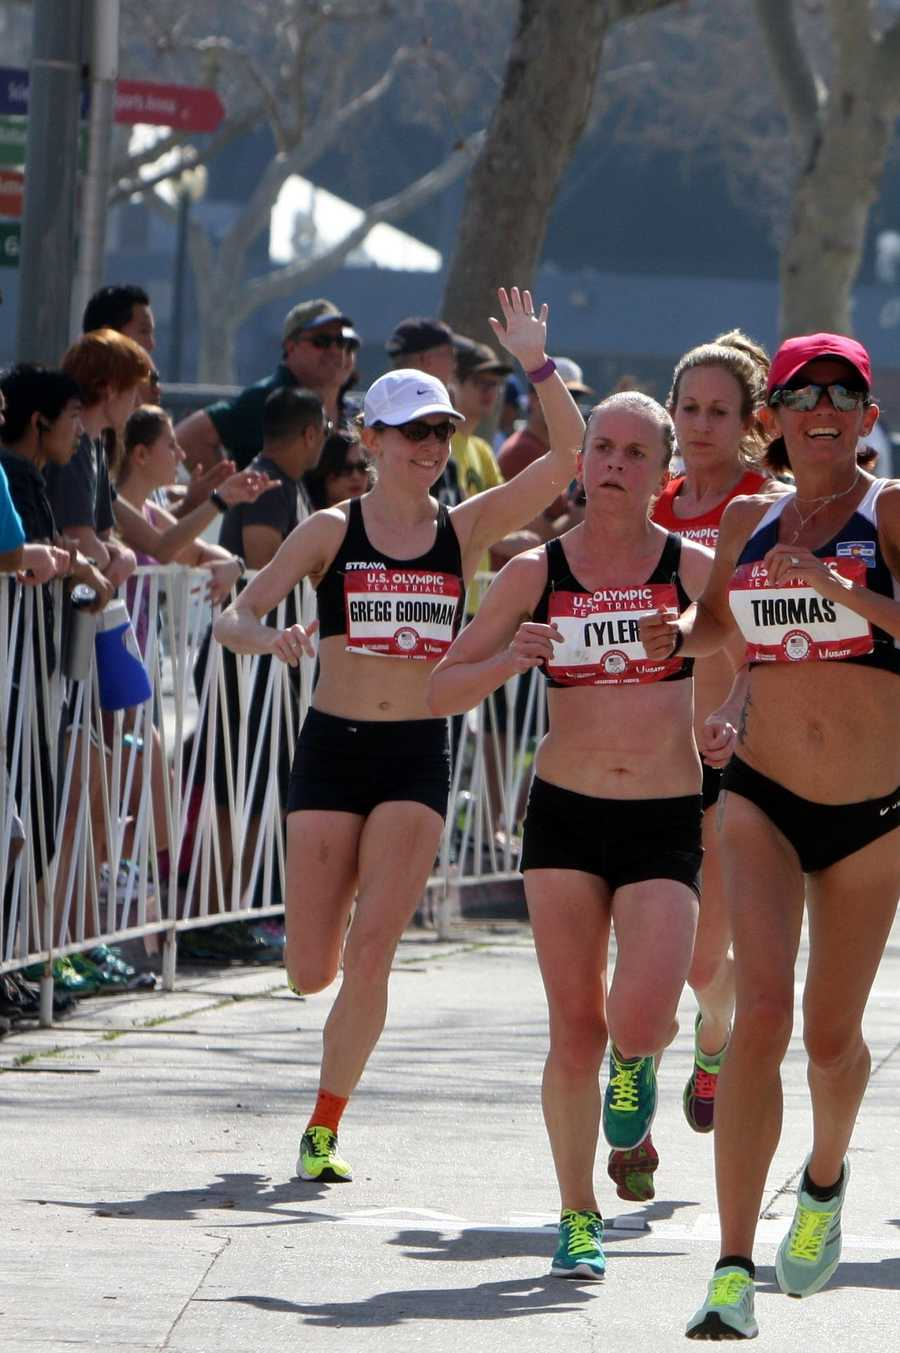 Kaitlin Goodman Gregg came in 54th out of 149 finishers in the women's U.S. Olympic Marathon Trials.